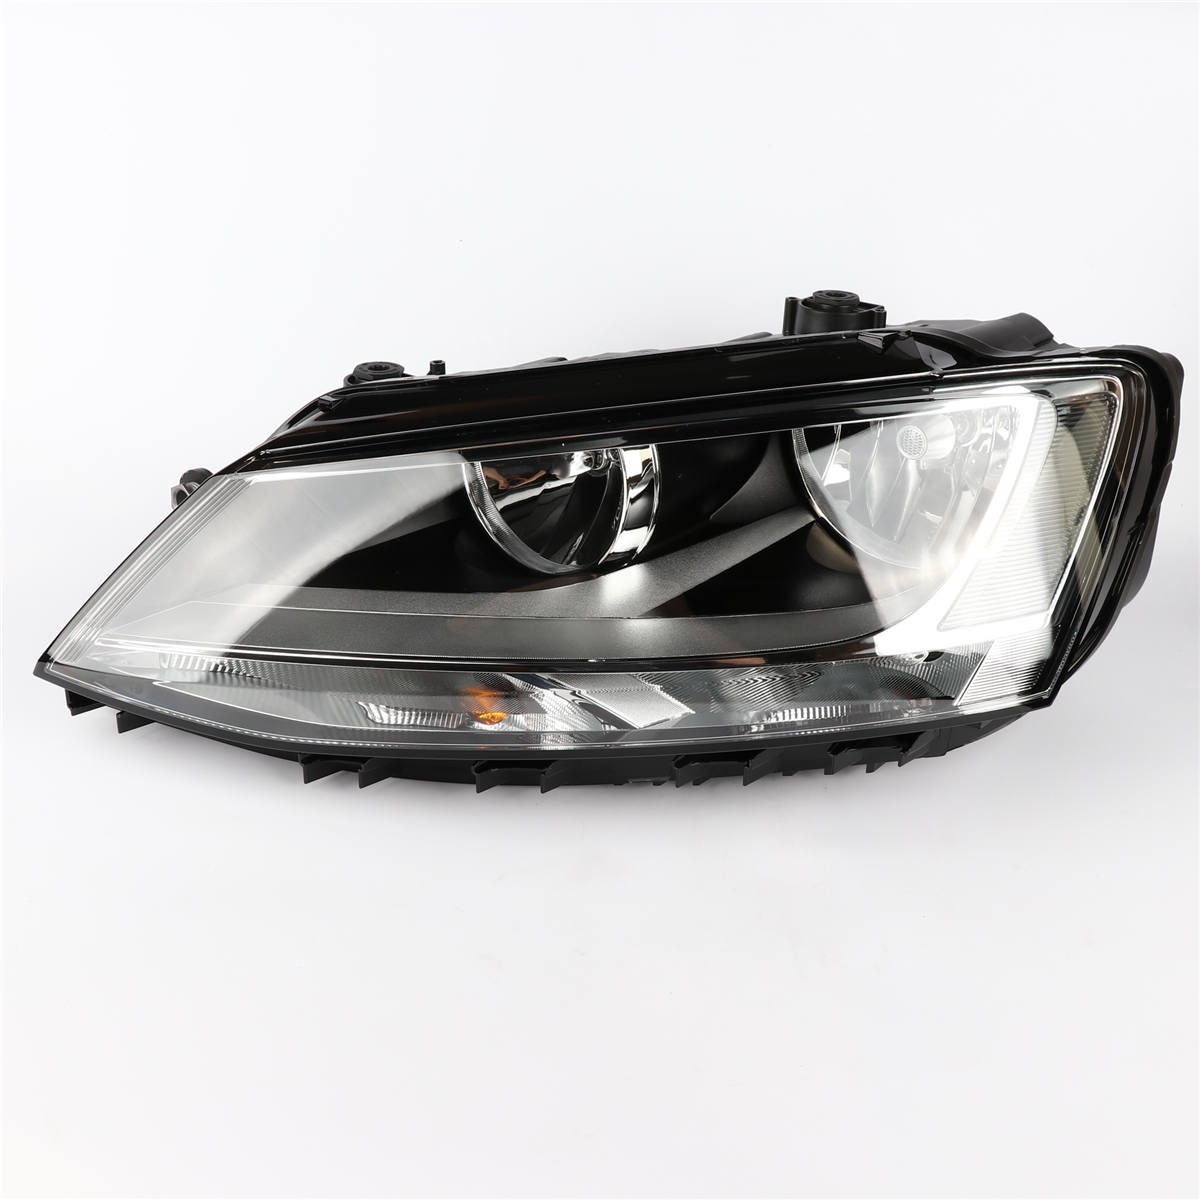 1Pcs Left Side Top Quality Genuine Front Head Light Lamp Headlight Assembly For VW Jetta MK6 L16D 941 005 front fog light assembly for vw jetta mk5 1t0 941 699 d